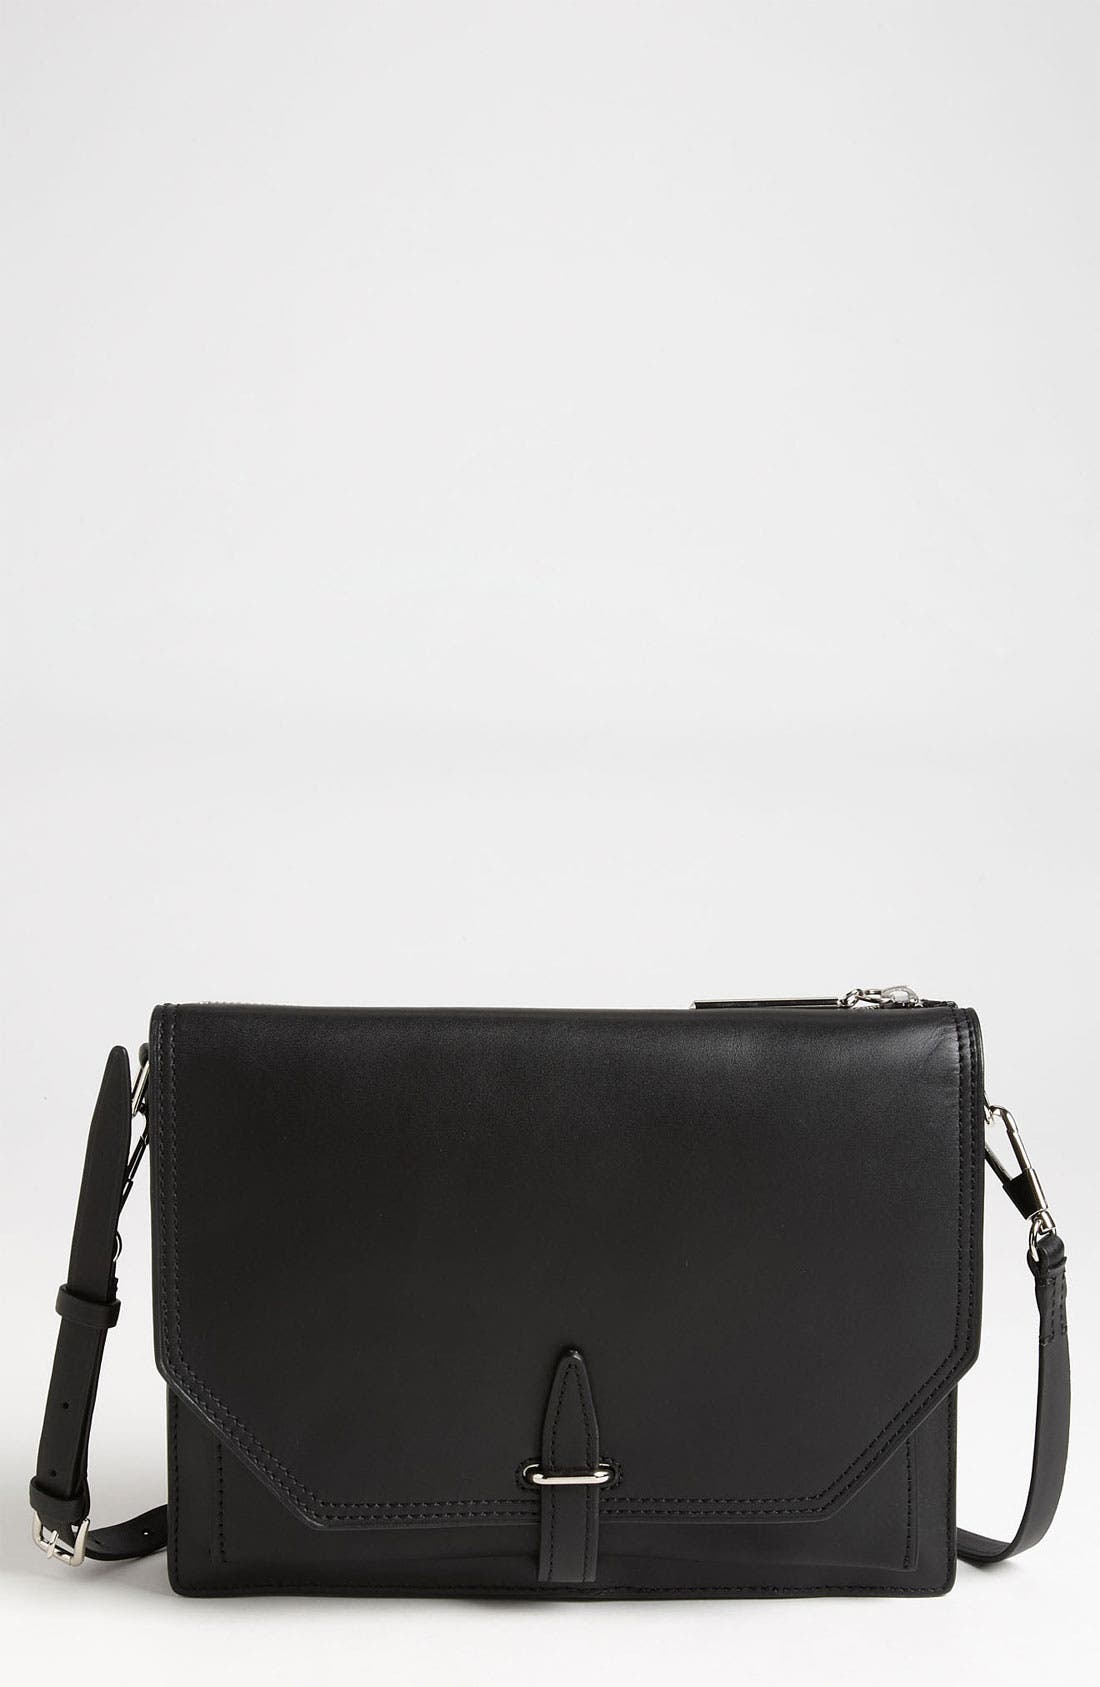 Alternate Image 1 Selected - 3.1 Phillip Lim Leather Crossbody Bag